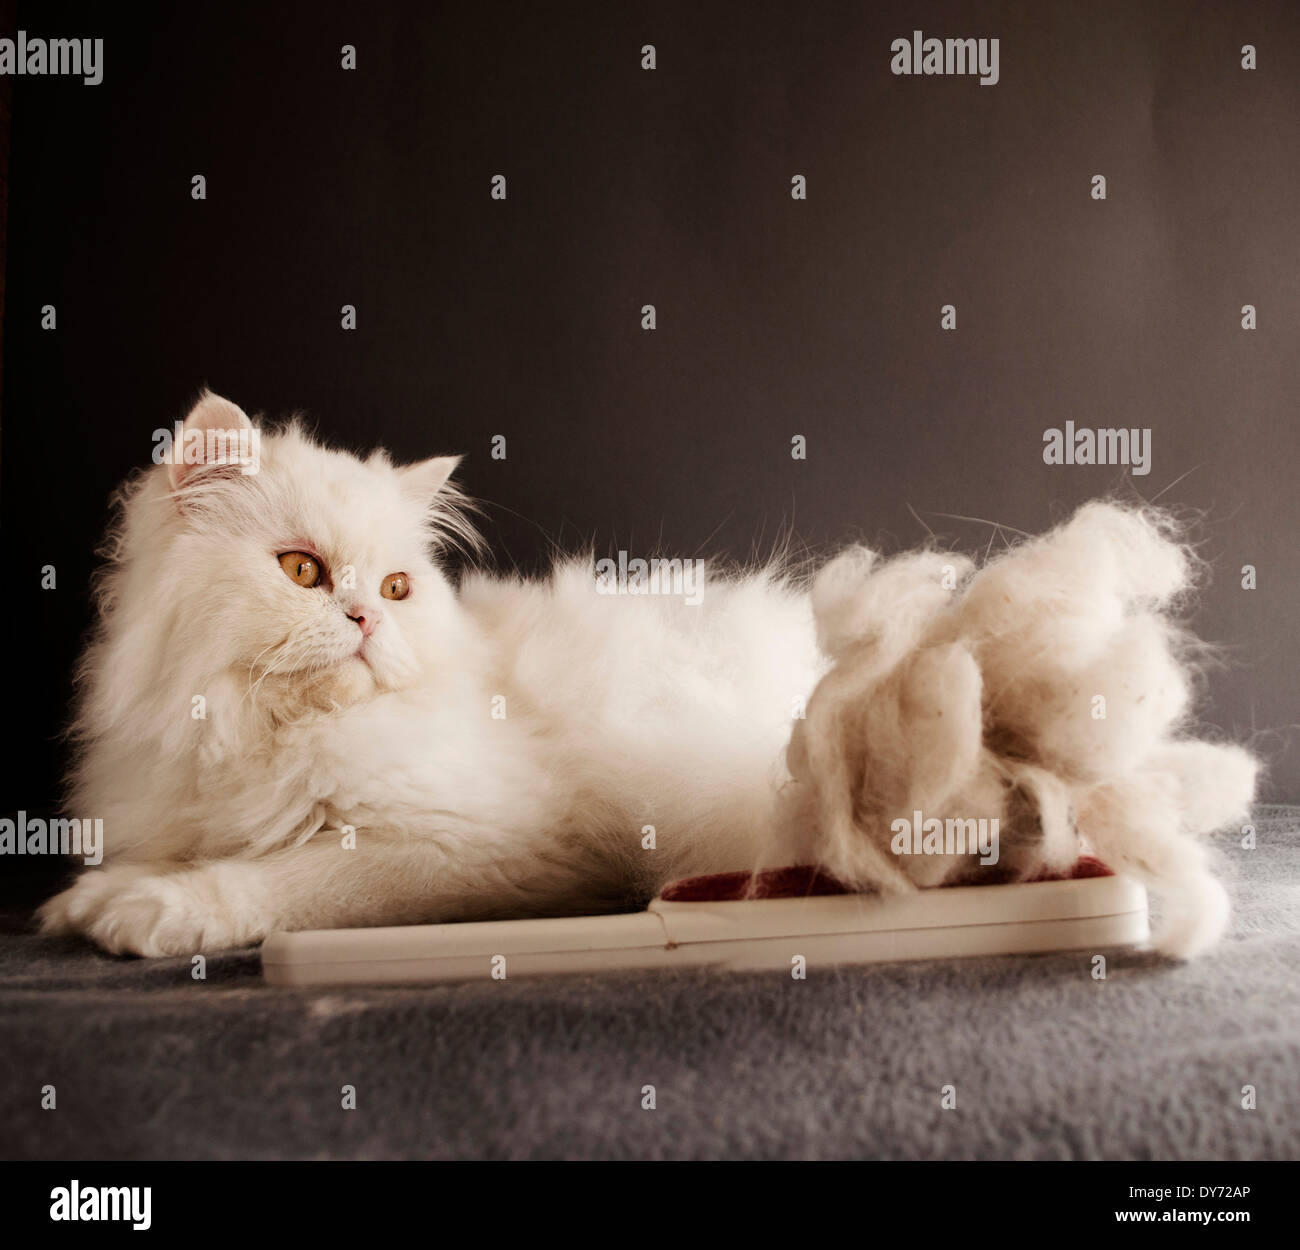 Cat hair - Stock Image